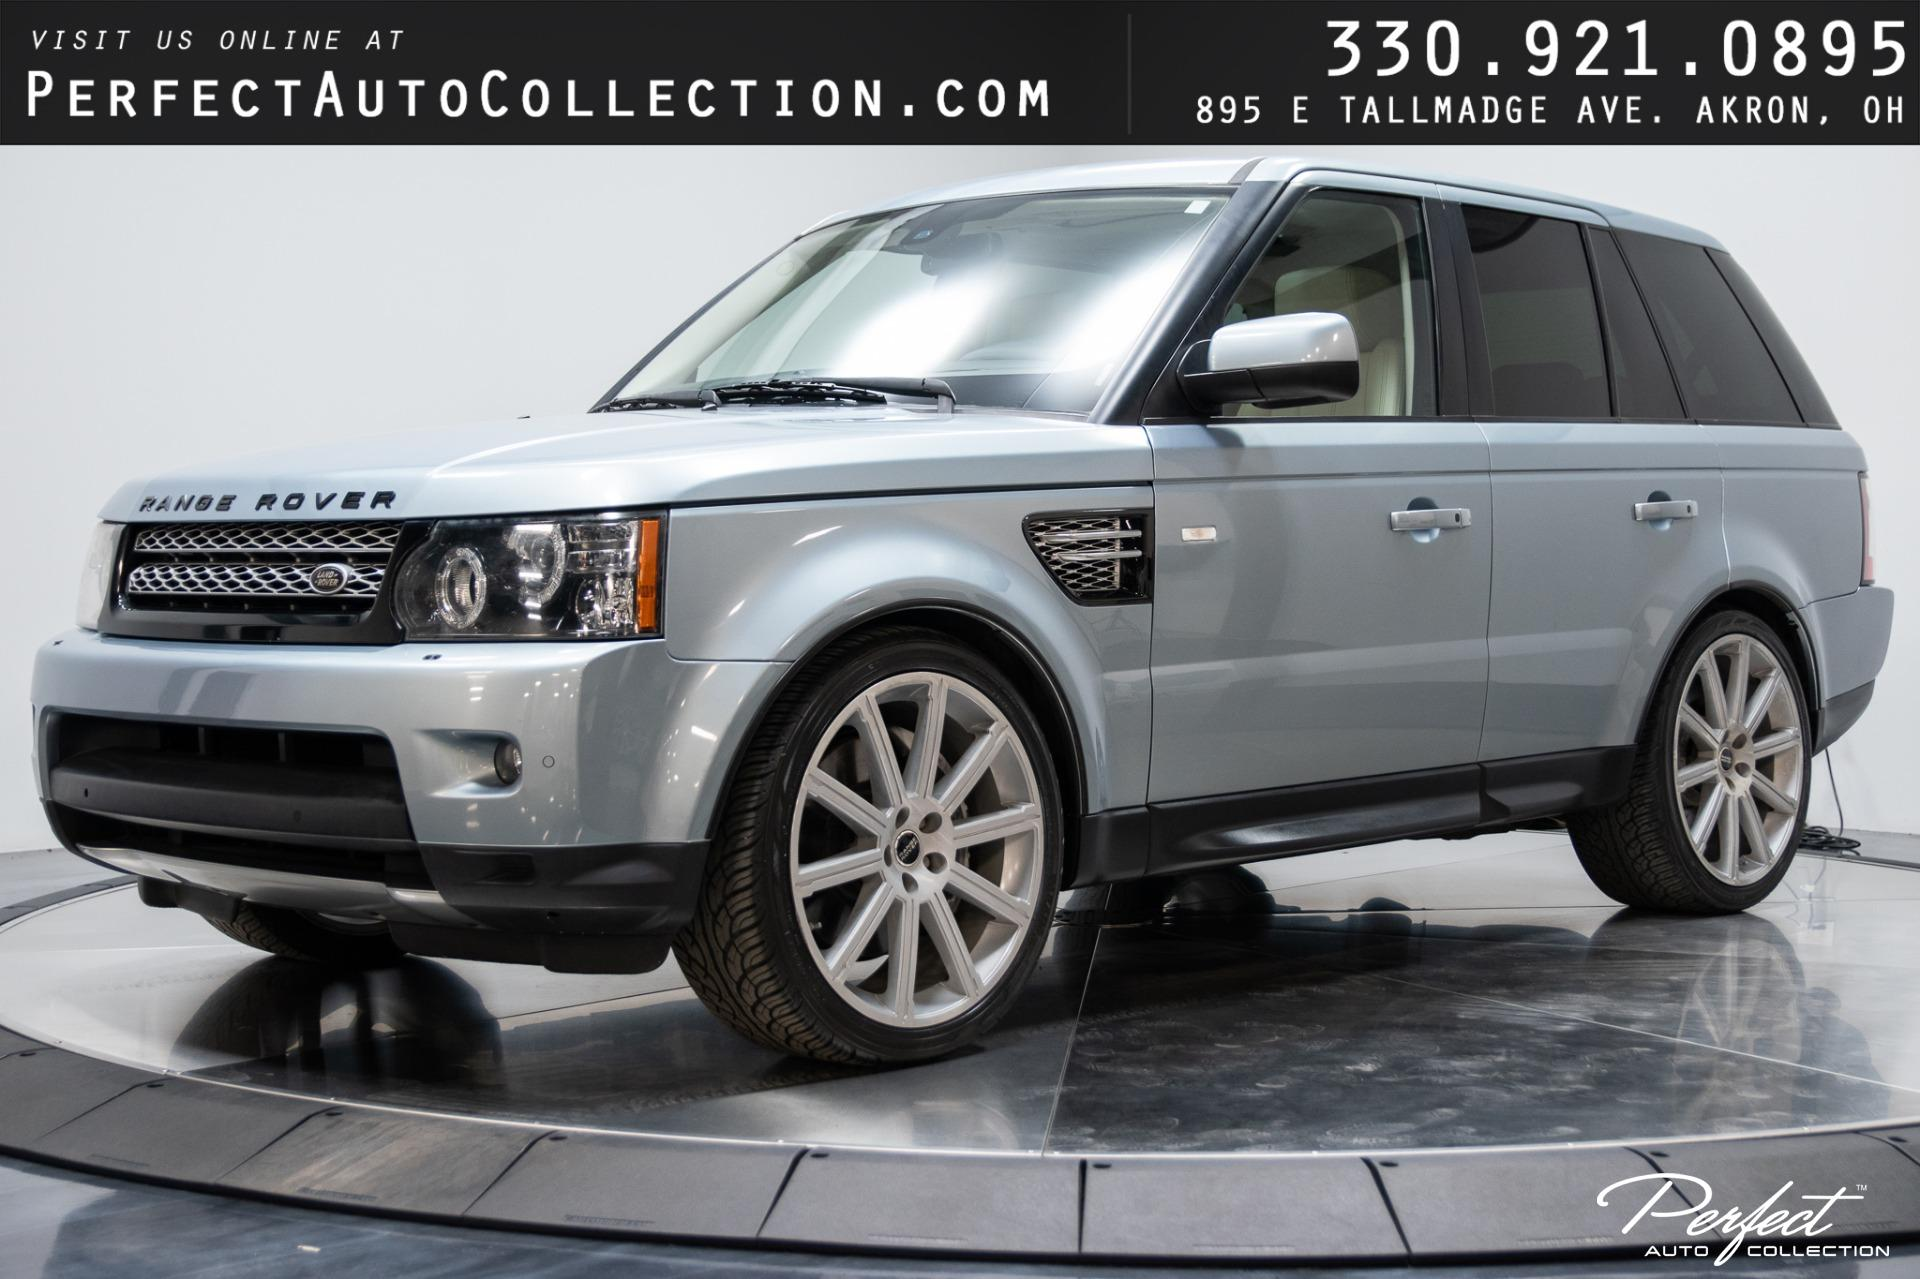 Used 2012 Land Rover Range Rover Sport Supercharged for sale $26,493 at Perfect Auto Collection in Akron OH 44310 1